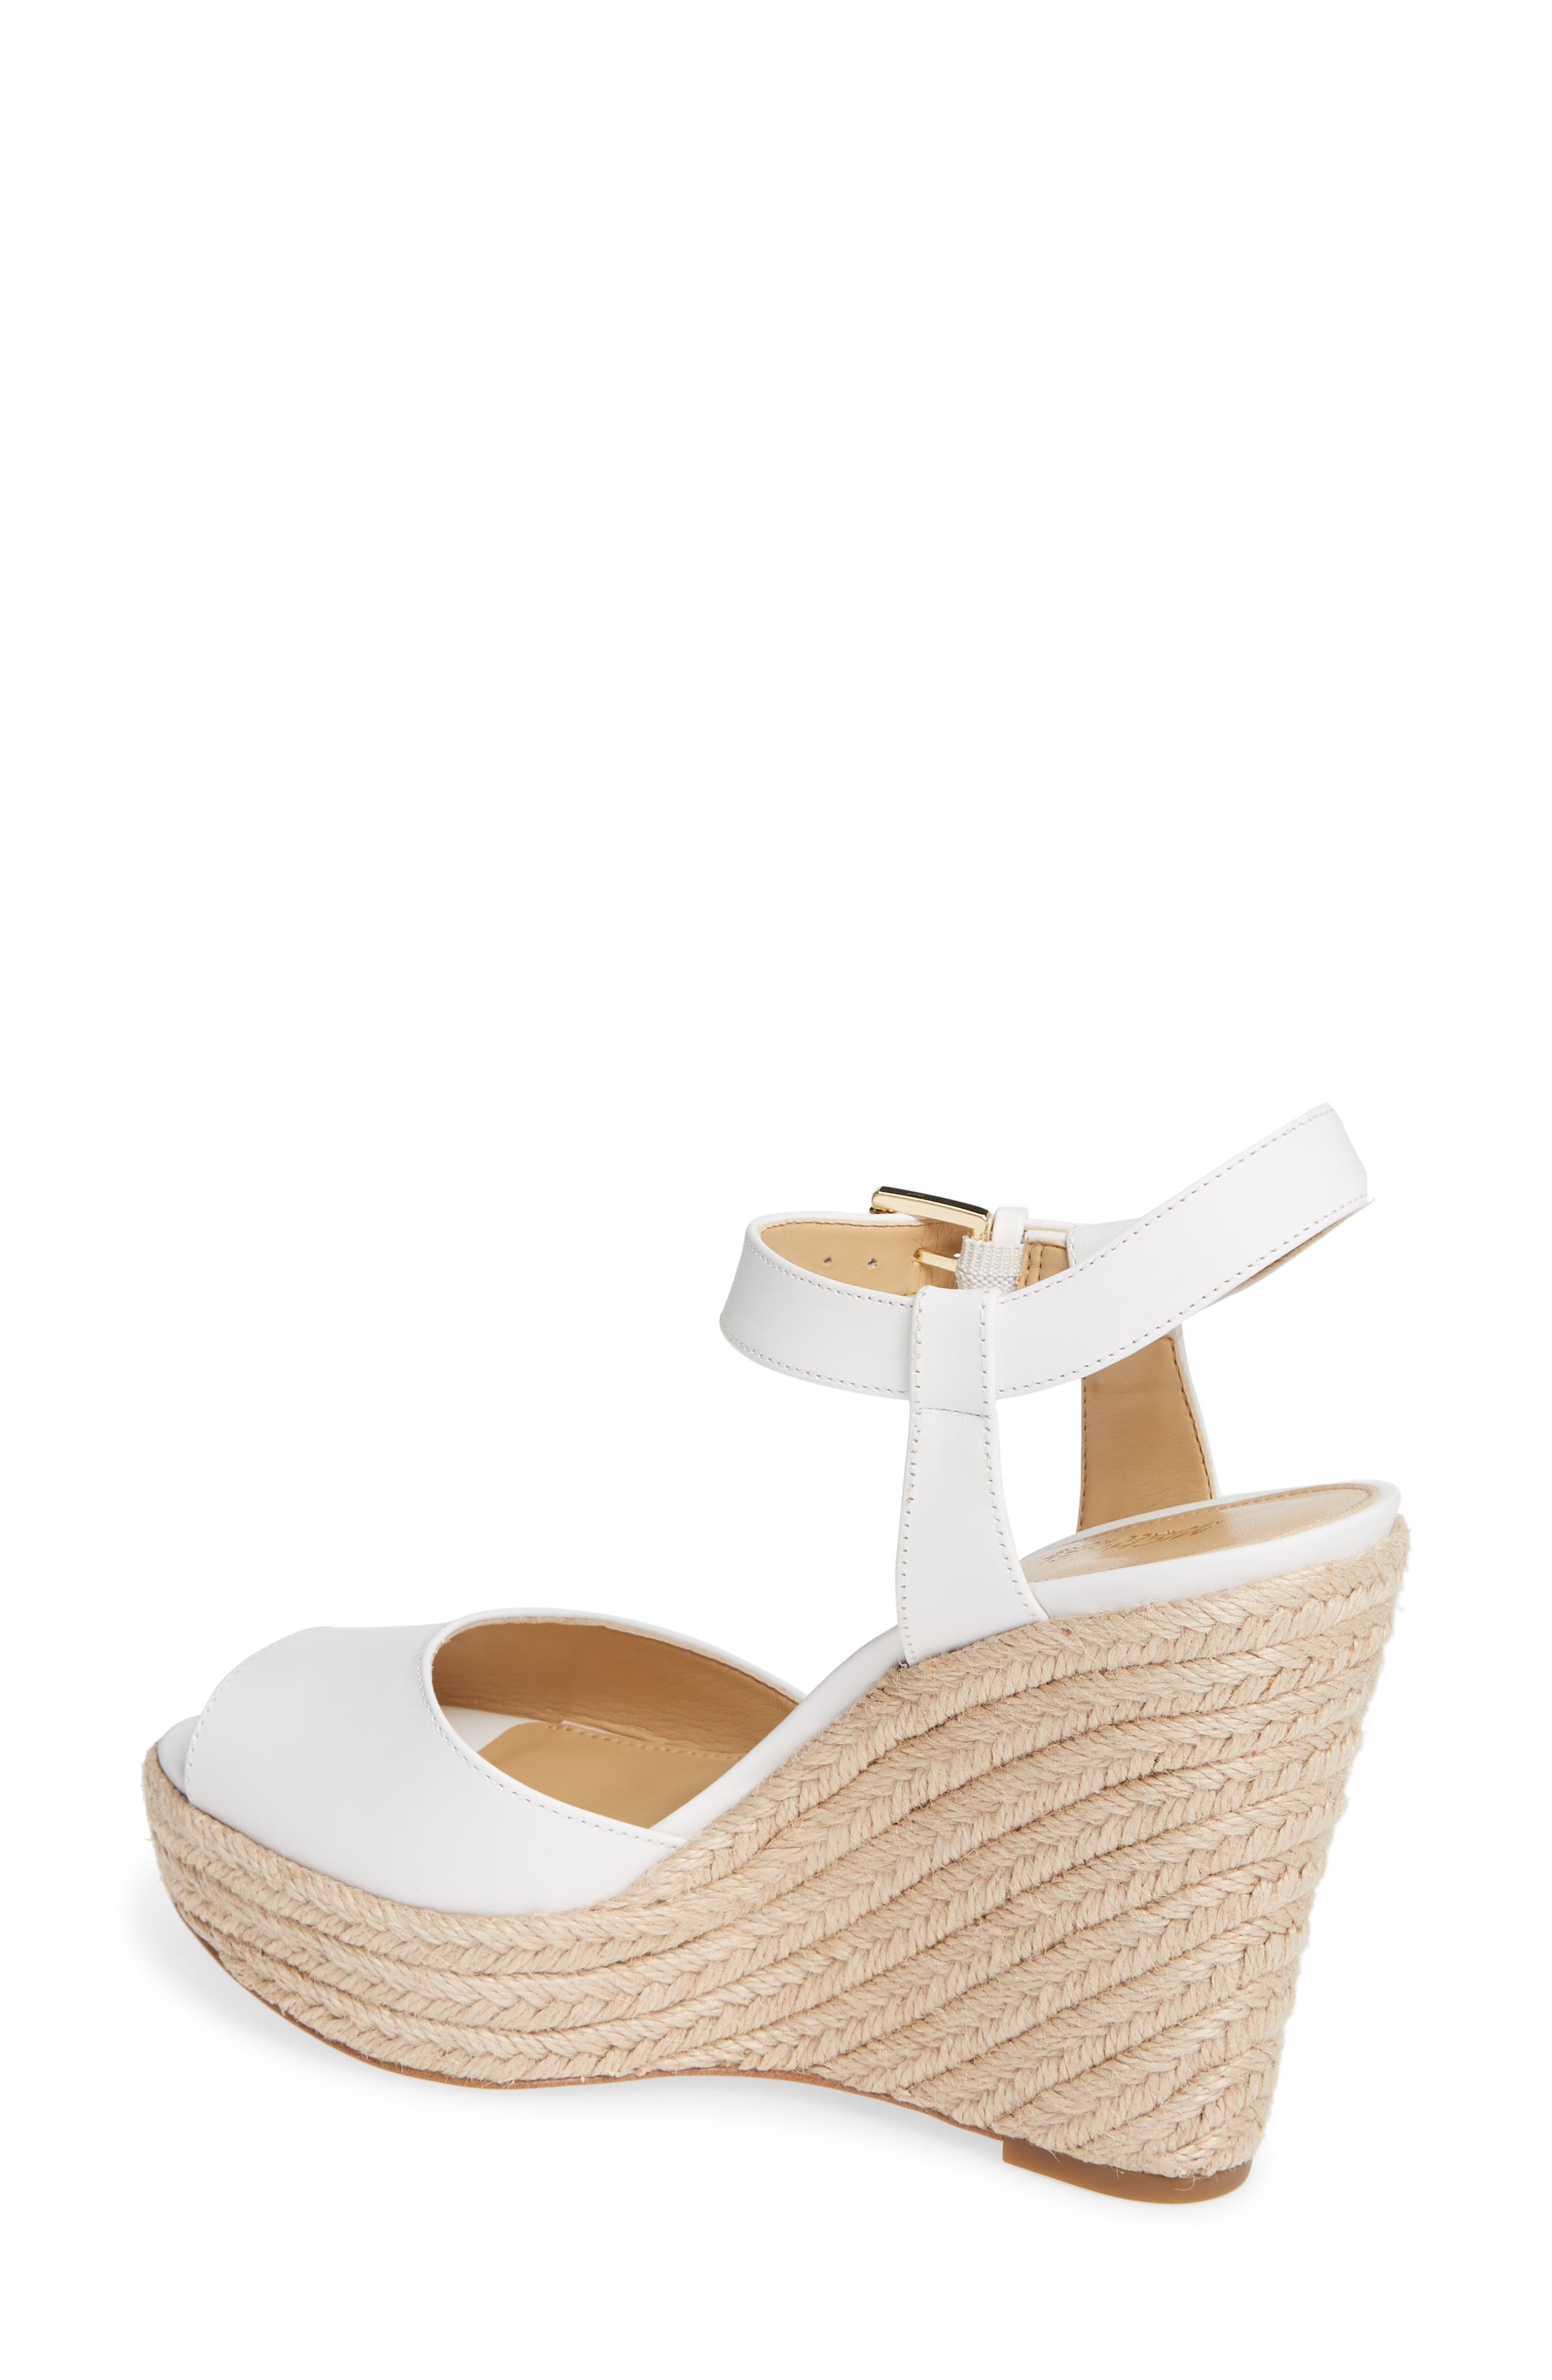 MICHAEL MICHAEL KORS, Carlyn Espadrille Wedge Sandal, Alternate thumbnail 2, color, 100